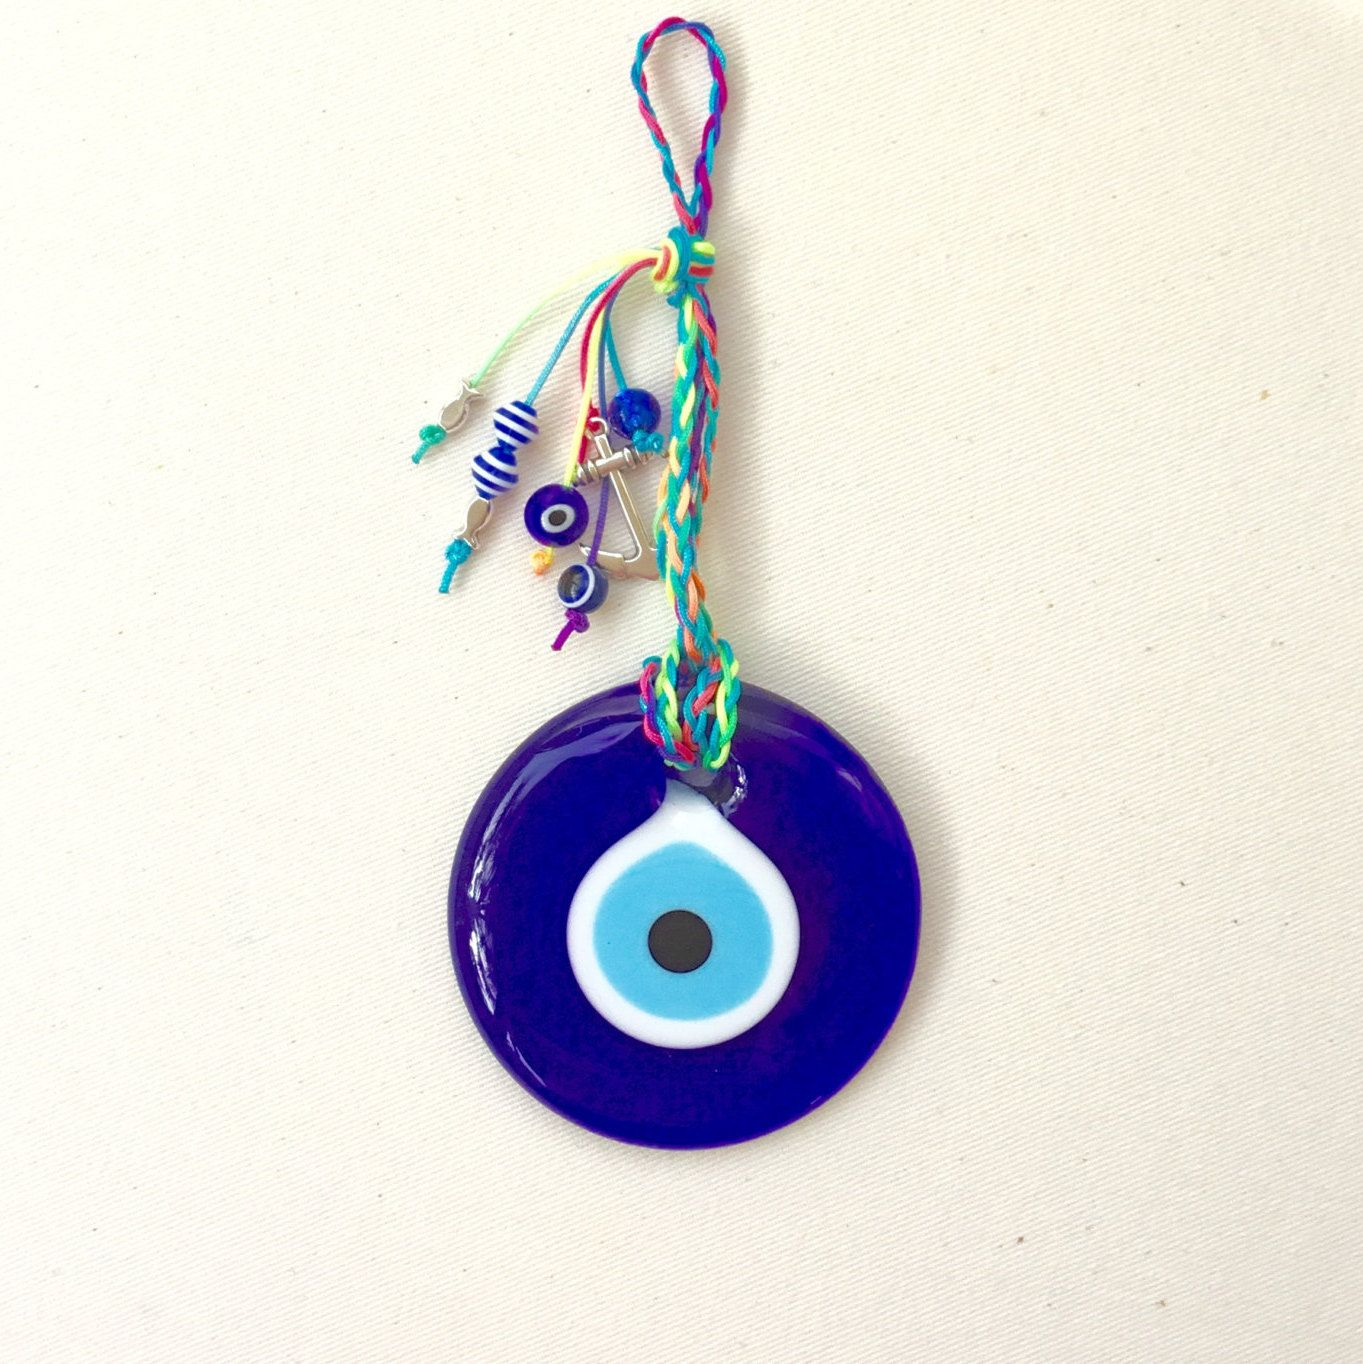 Round evil eye charm good luck charm evil eyes nazar talisman round evil eye charm good luck charm evil eyes nazar talisman amipublicfo Gallery